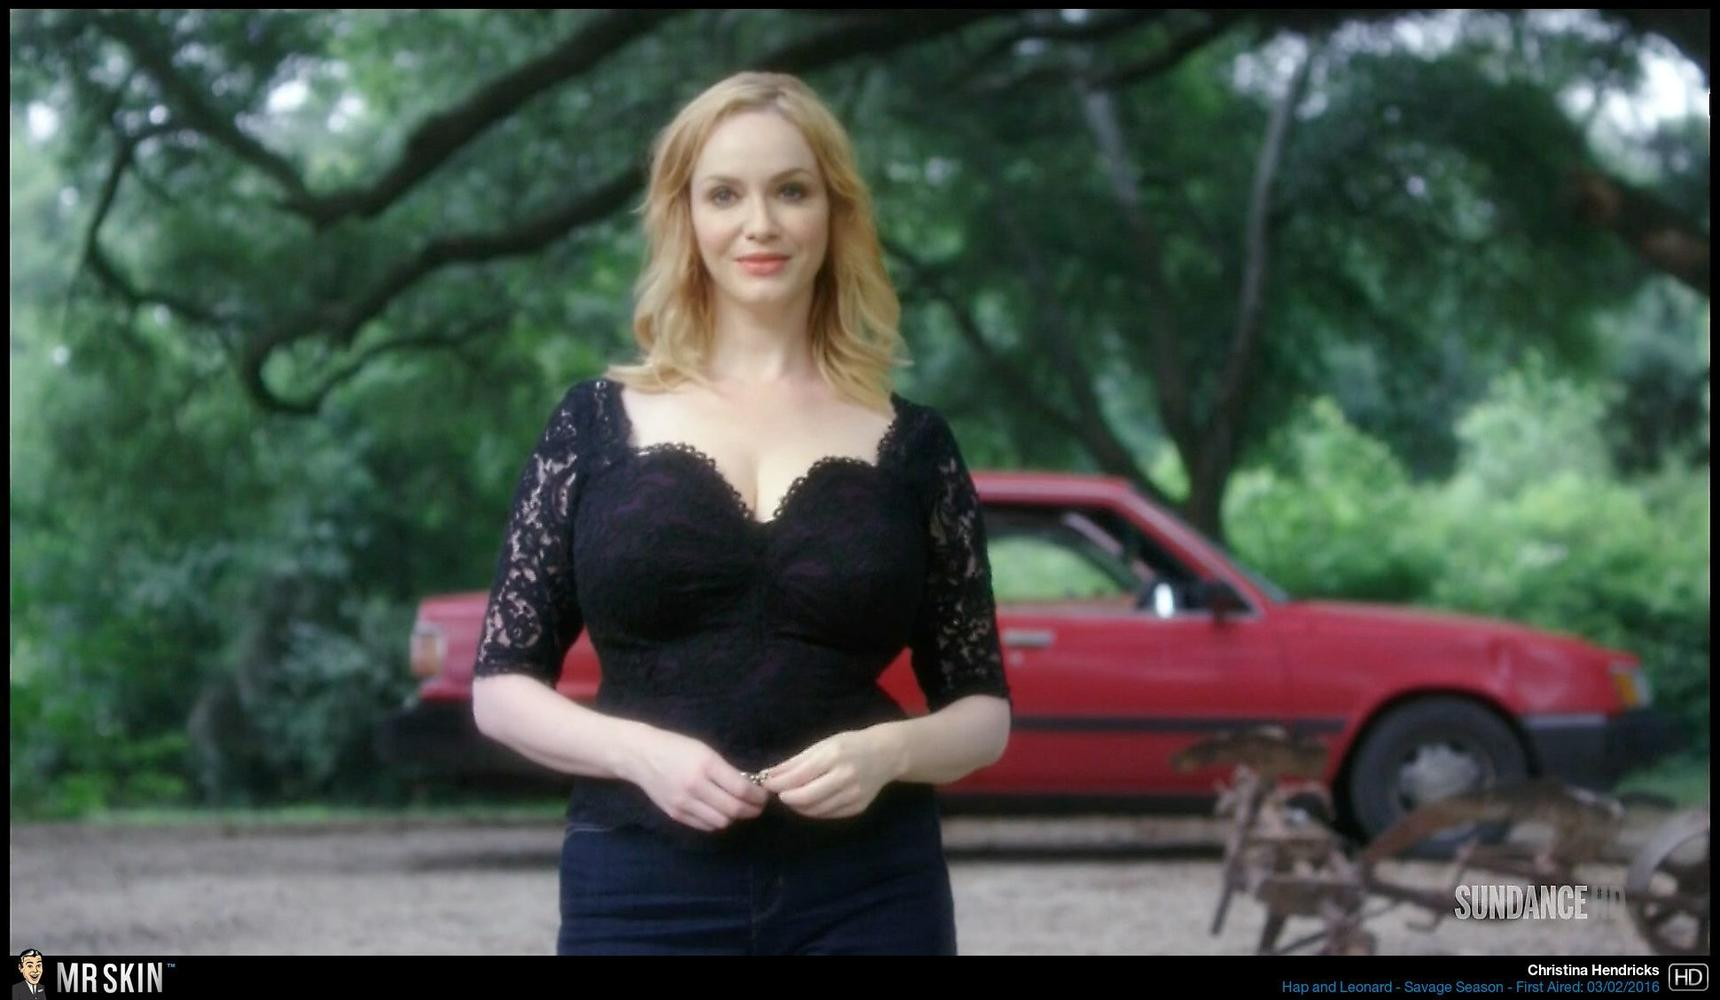 Heres A Christina Hendricks Appreciation Post Since She -9089